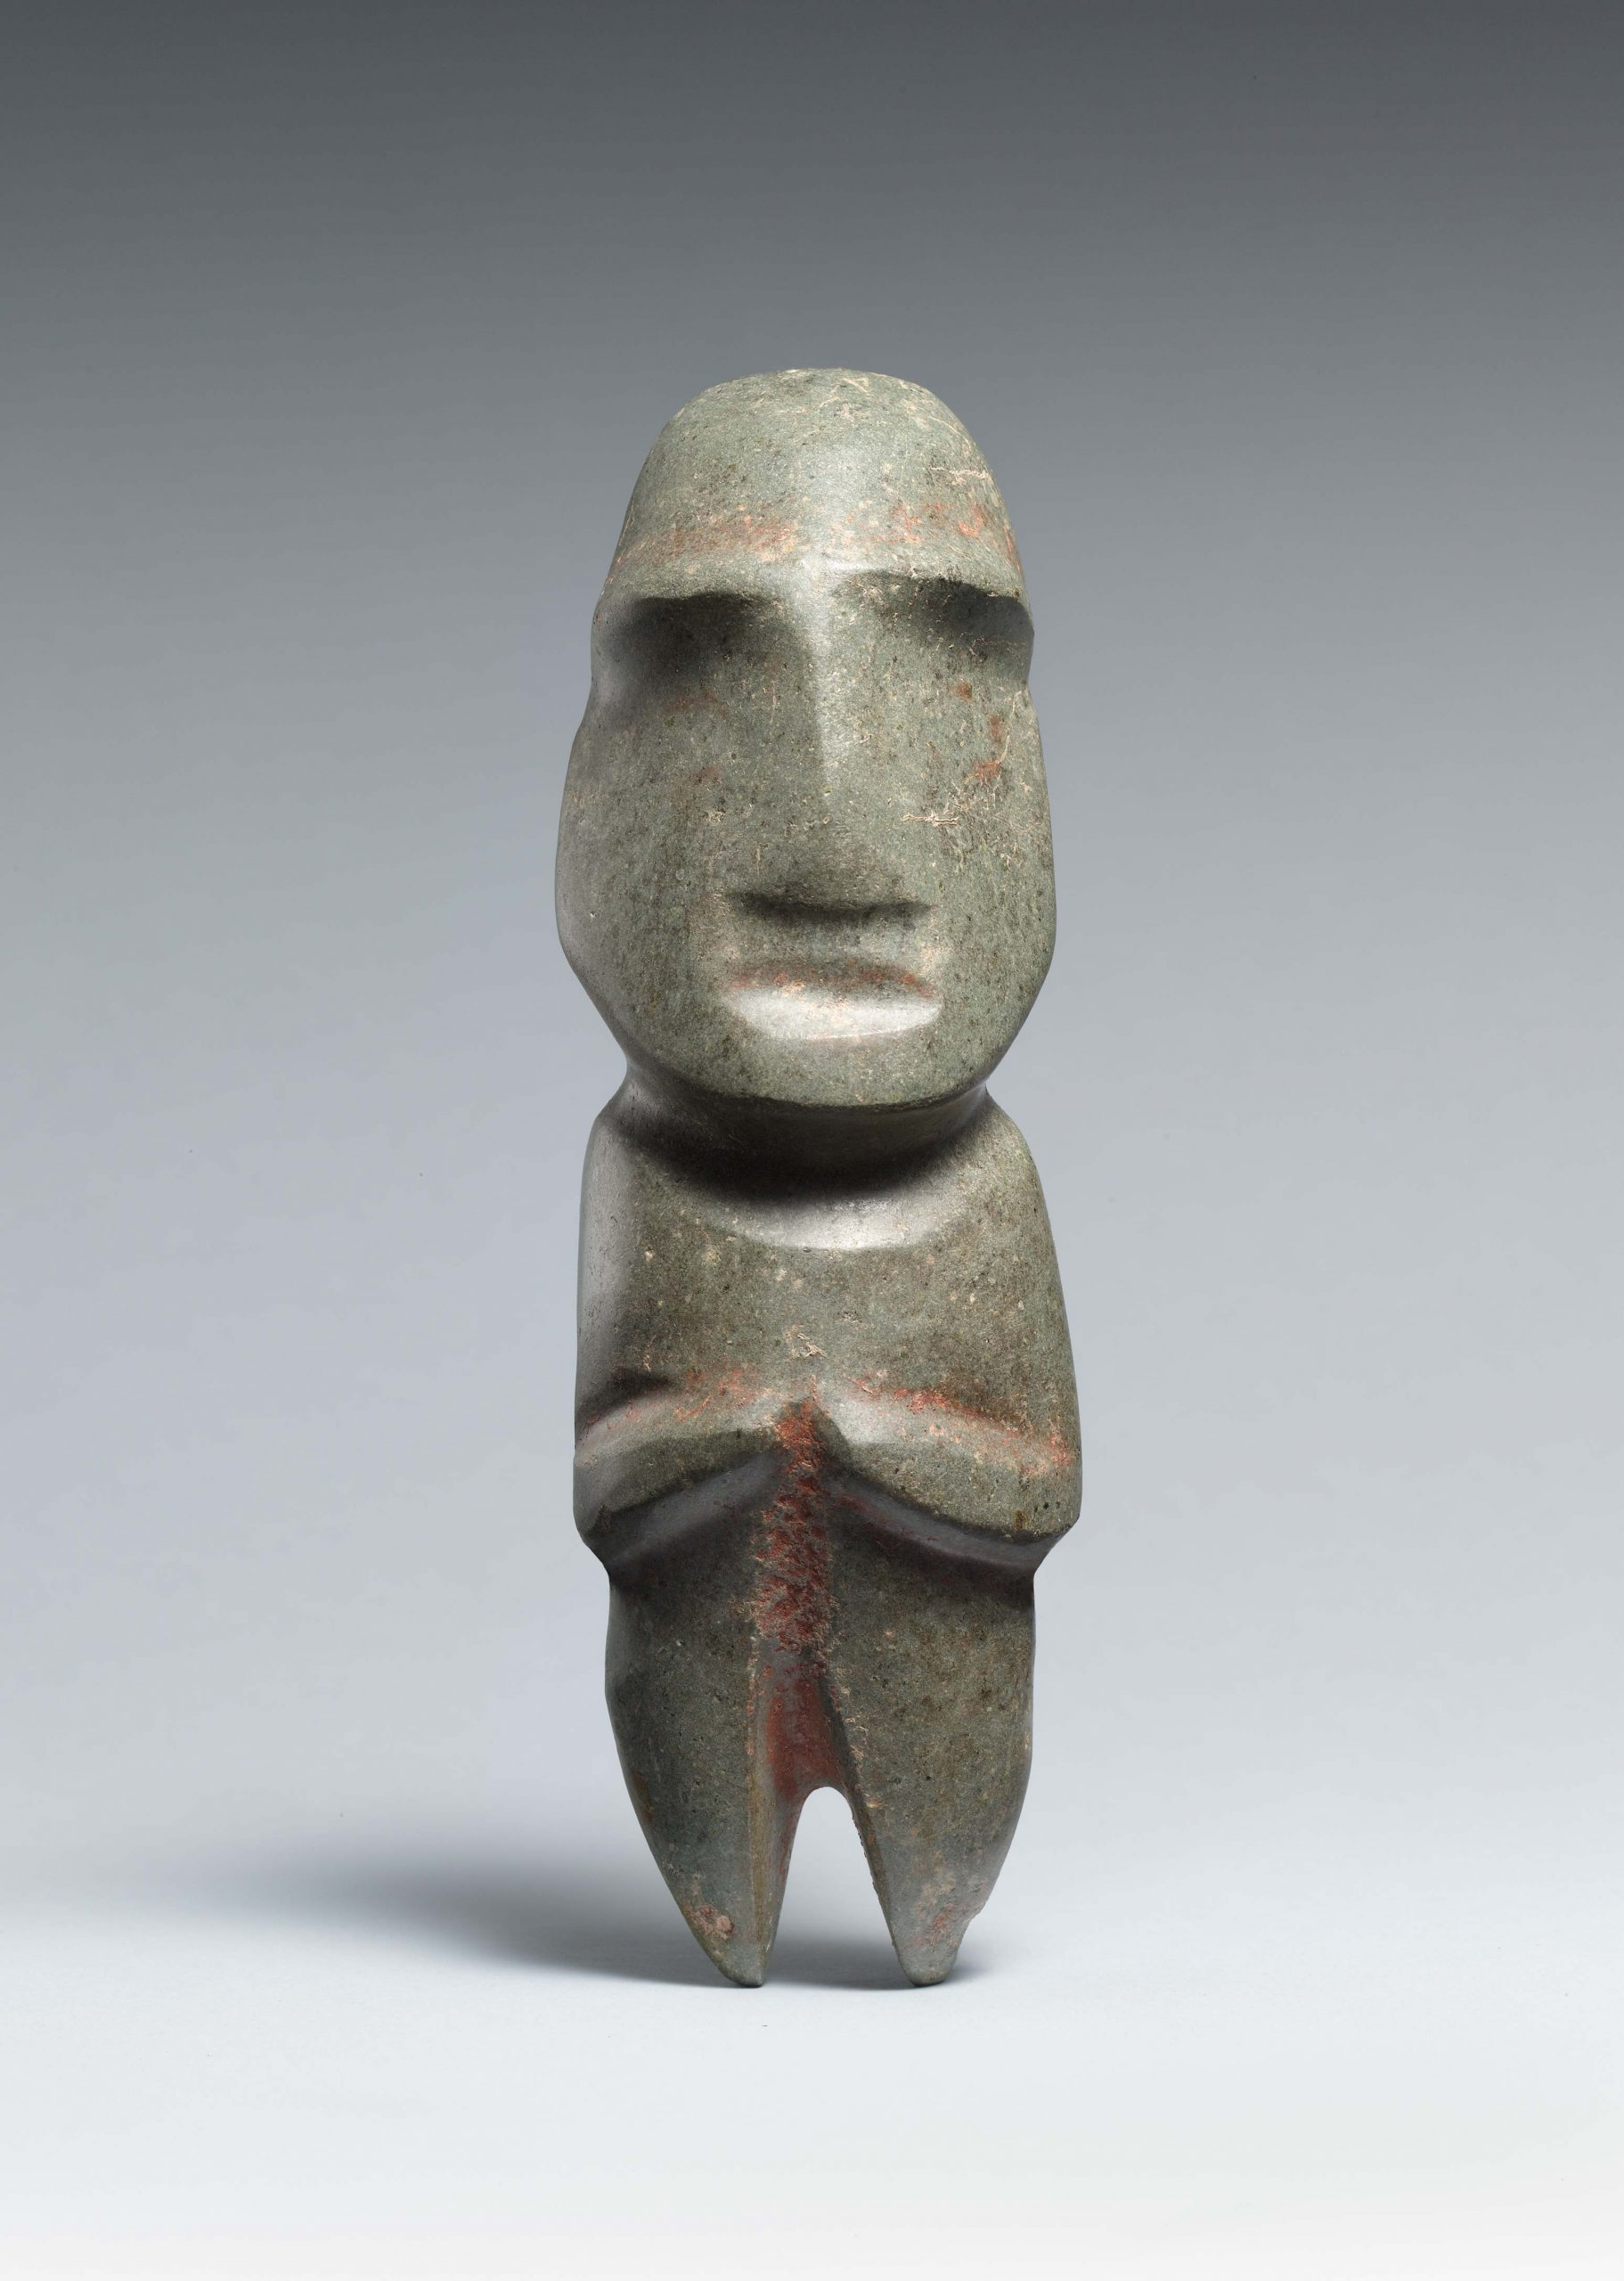 Abtract figure with arms crossed in front and a rounded head with T-shaped nasal and eyebrow ridges.